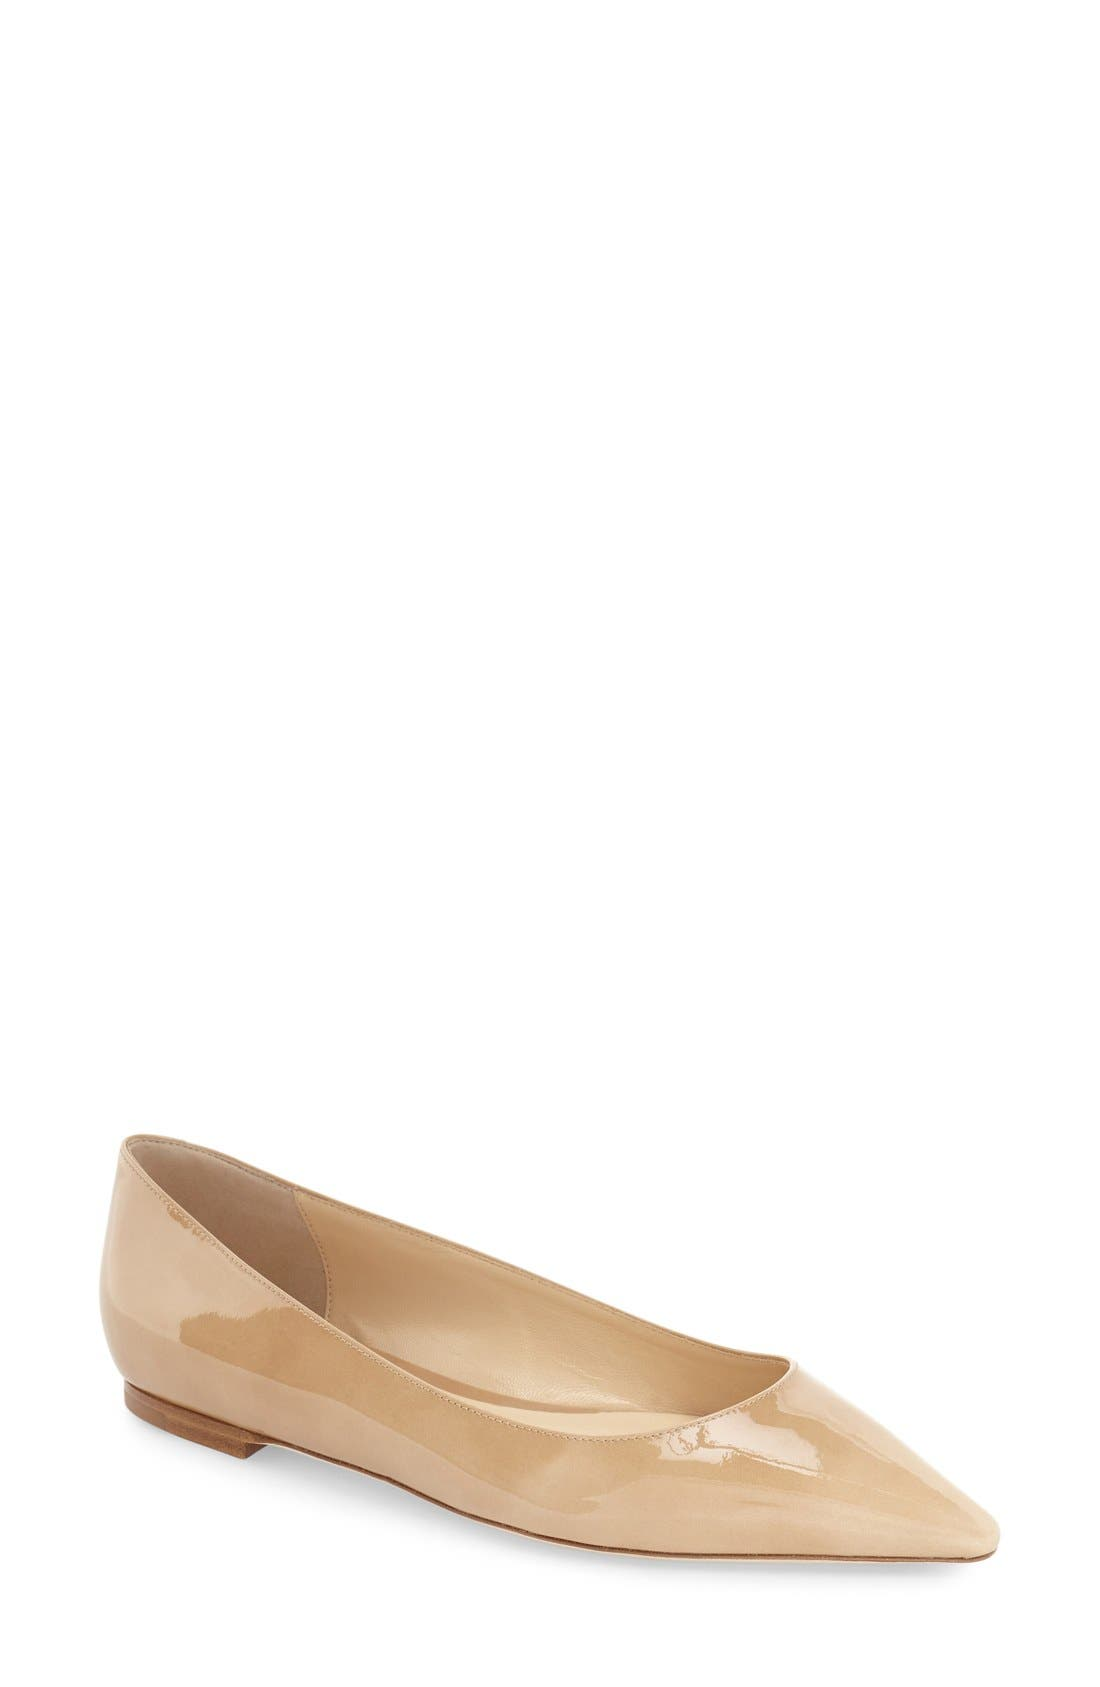 Main Image - Jimmy Choo 'Romy' Pointy Toe Flat (Women)